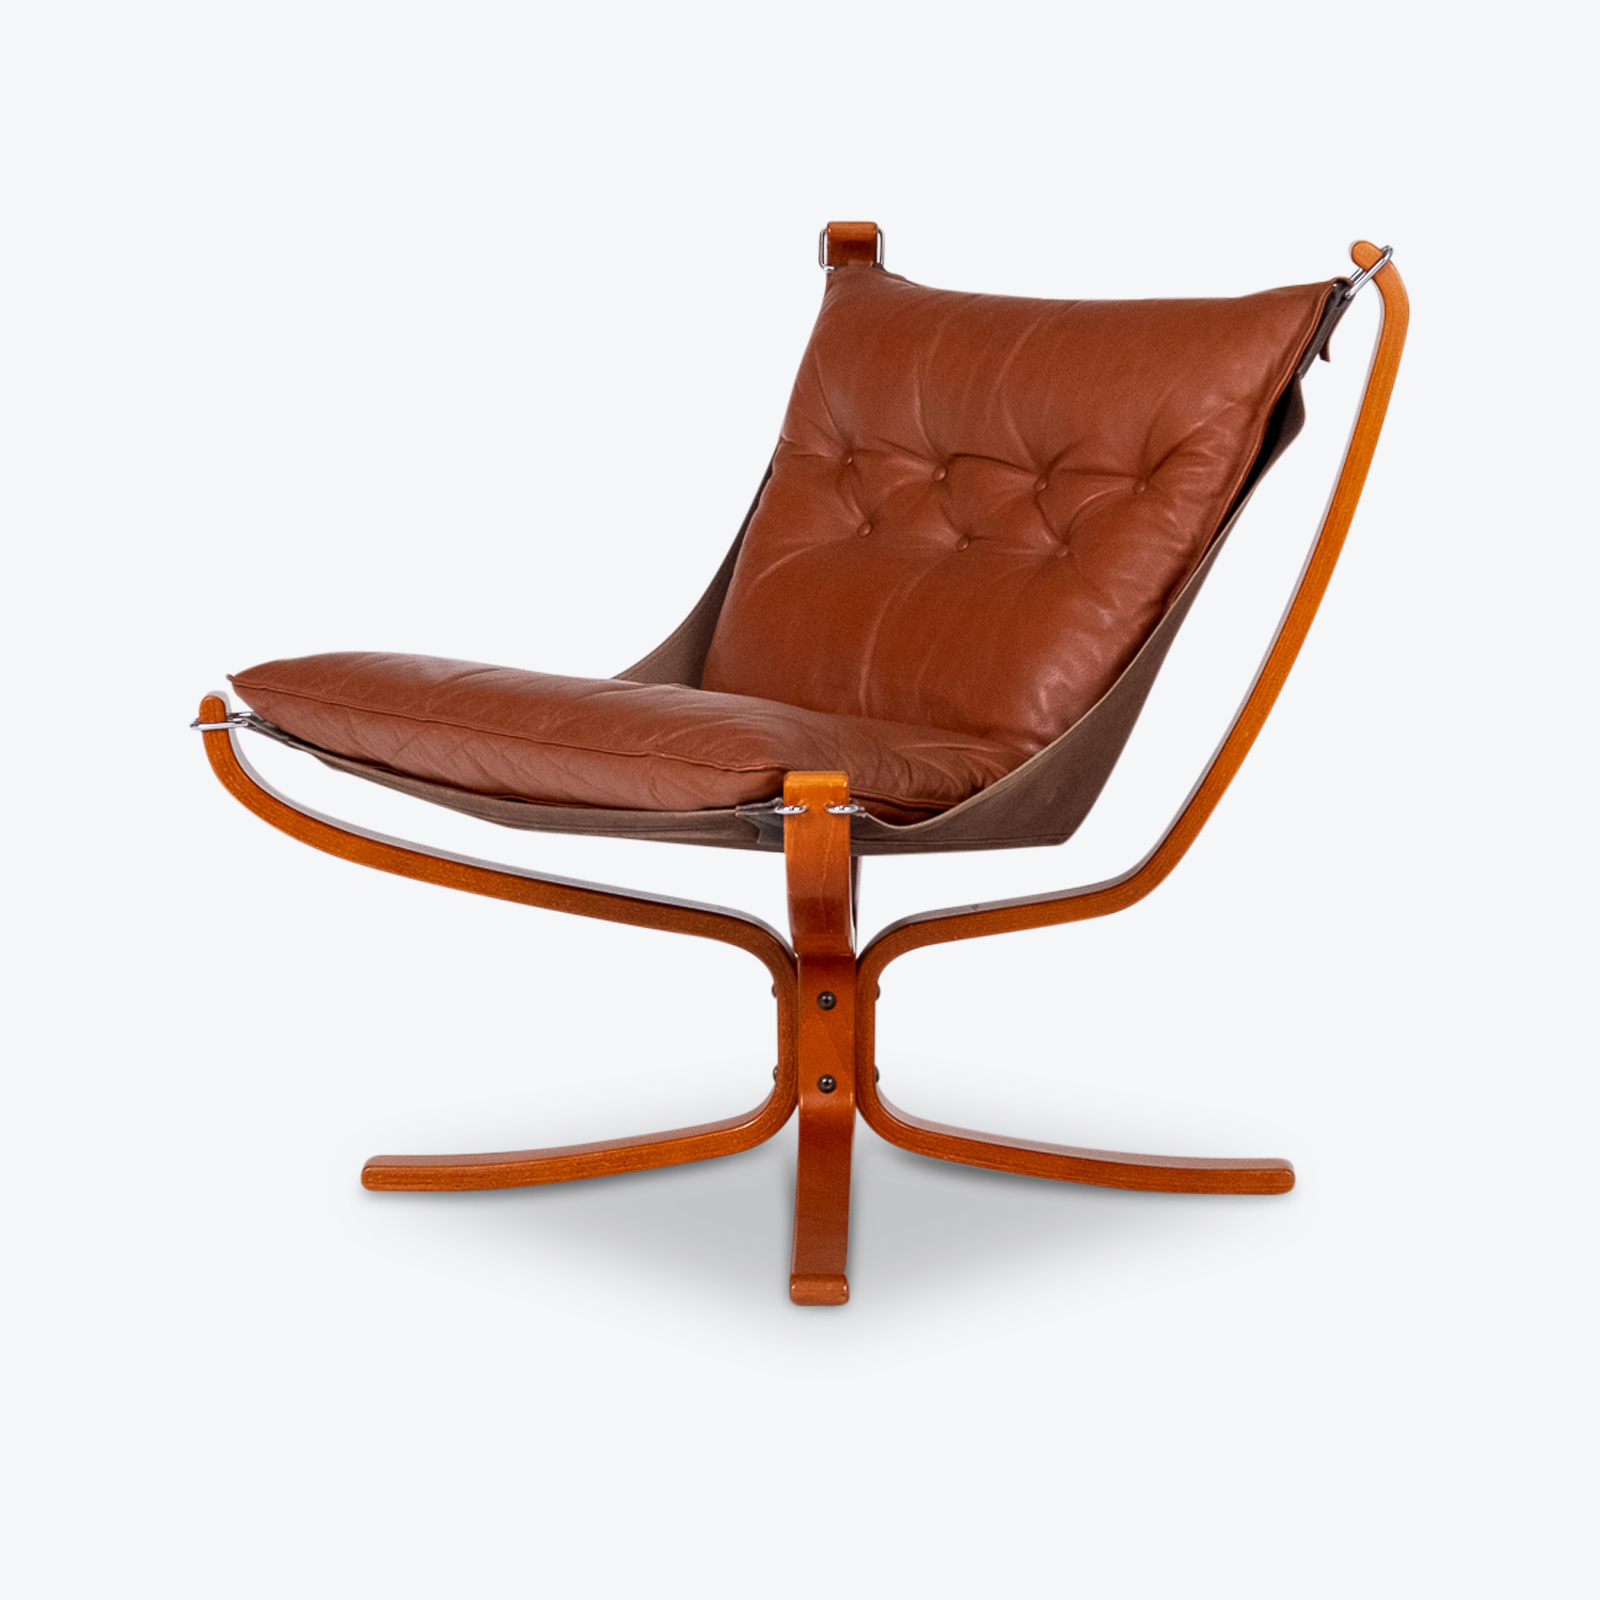 Low Back Falcon Armchair In Tan Leather By Sigurd Ressell For Vatne Mobler, 1971, Norway Hero